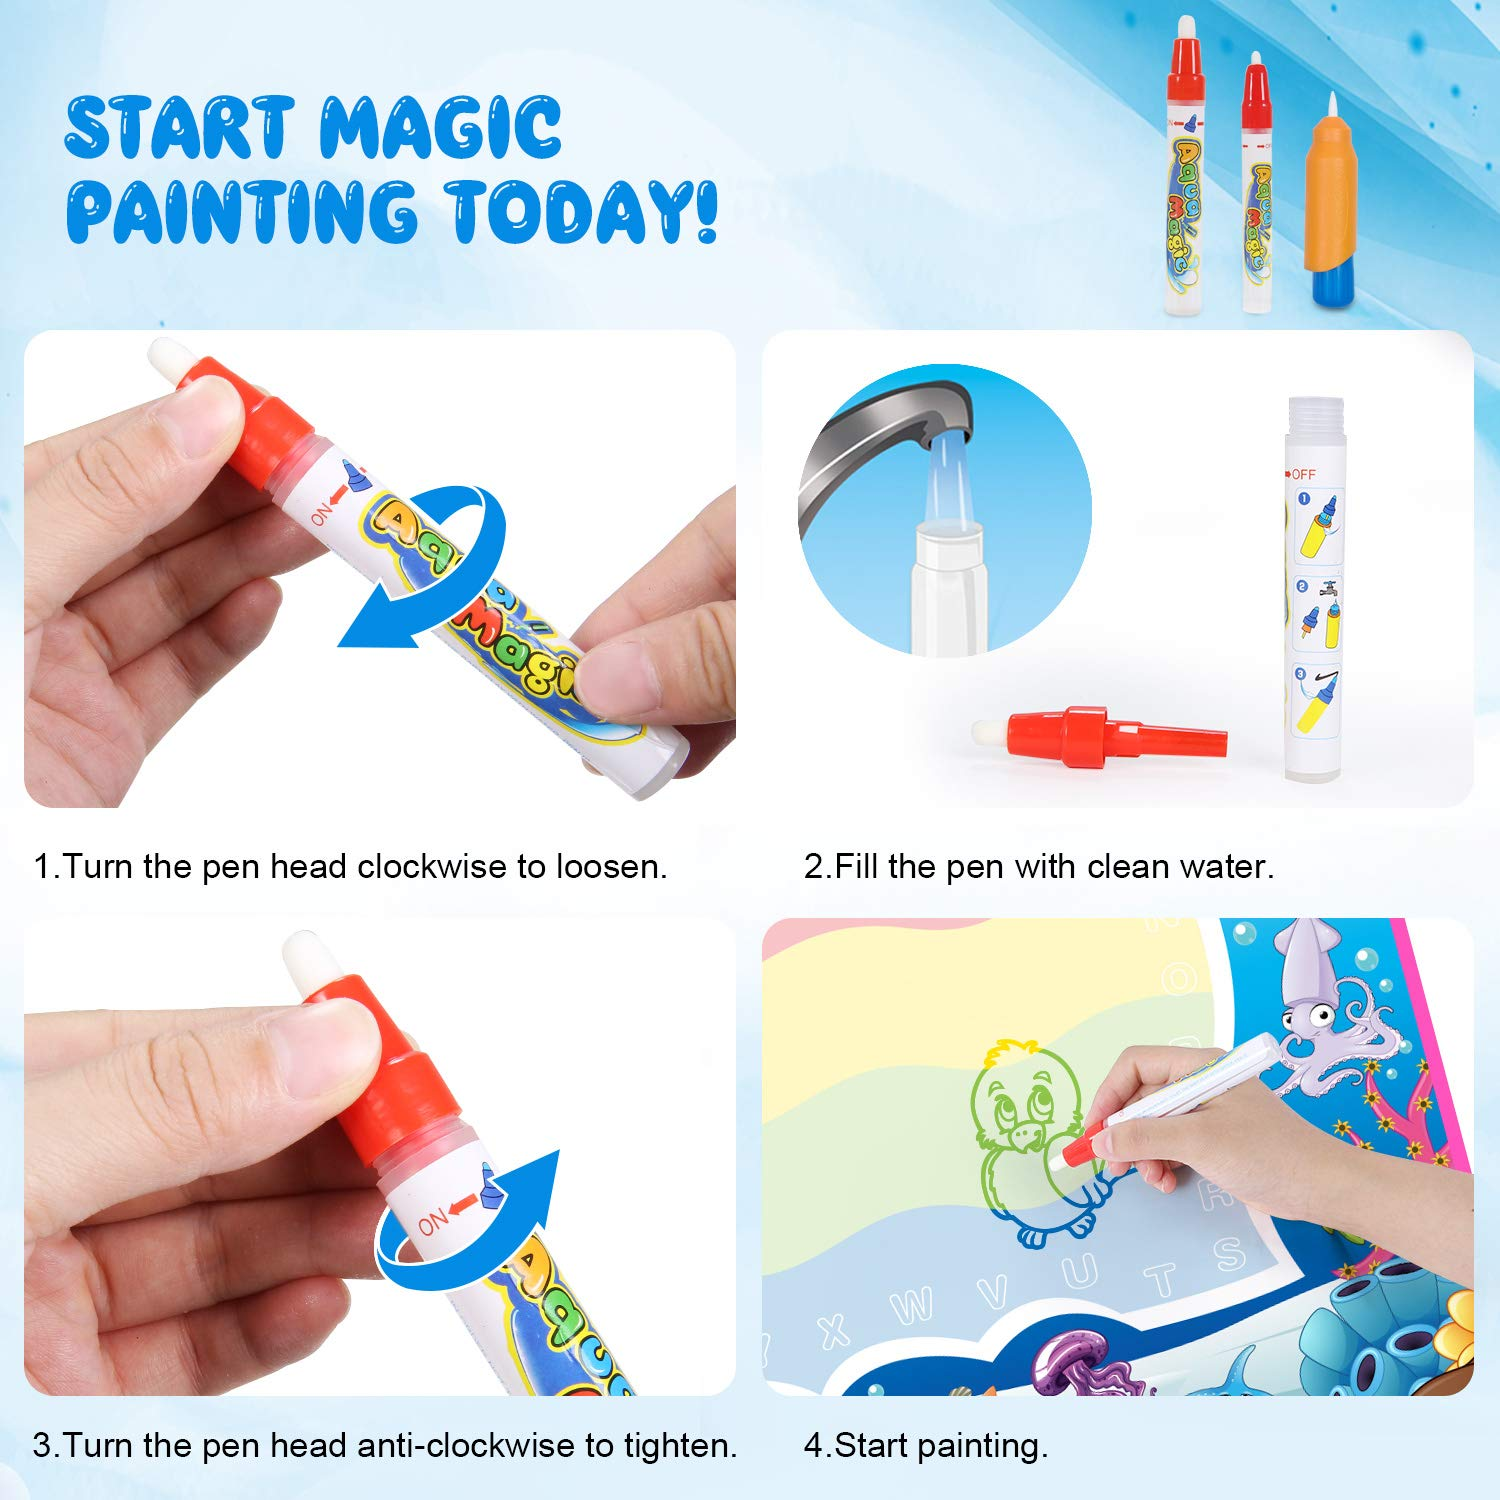 Non-Toxic Colorful Erasable Sketching Pad Tablet Toddler Kids Preschooler SGILE Magnetic Drawing Board Toy Travel Magna Doodle Drawing Writing Sketching Pad 3 Stamps Blue